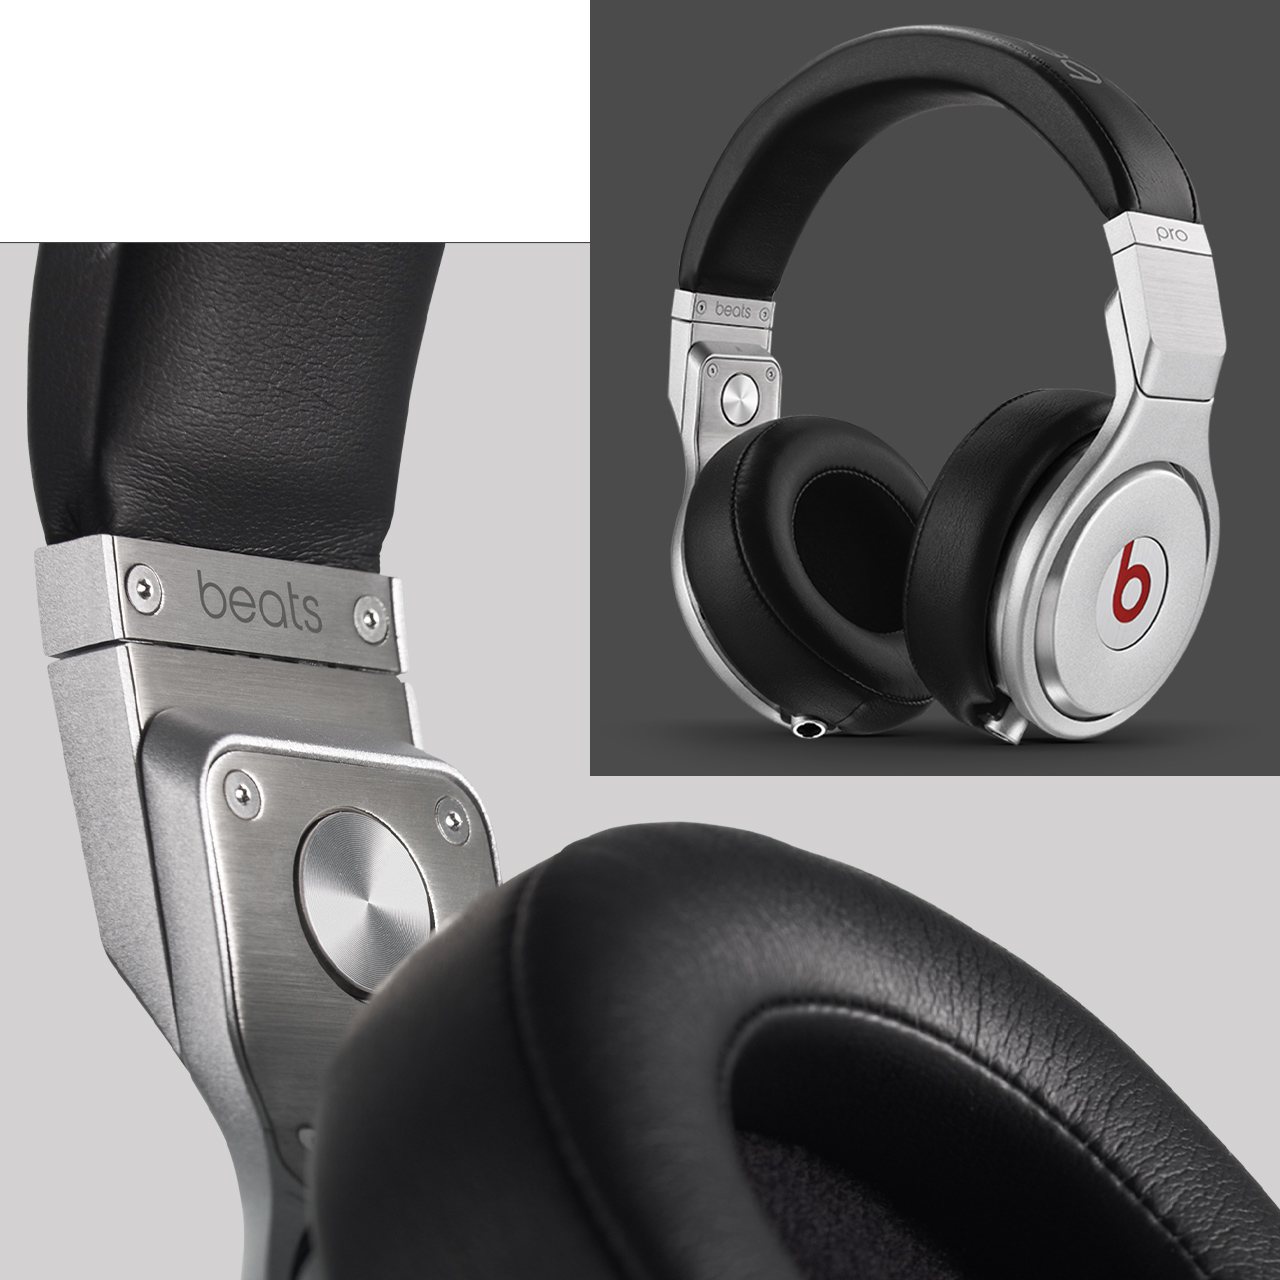 Beats Pro Headphones Support Beats By Dre